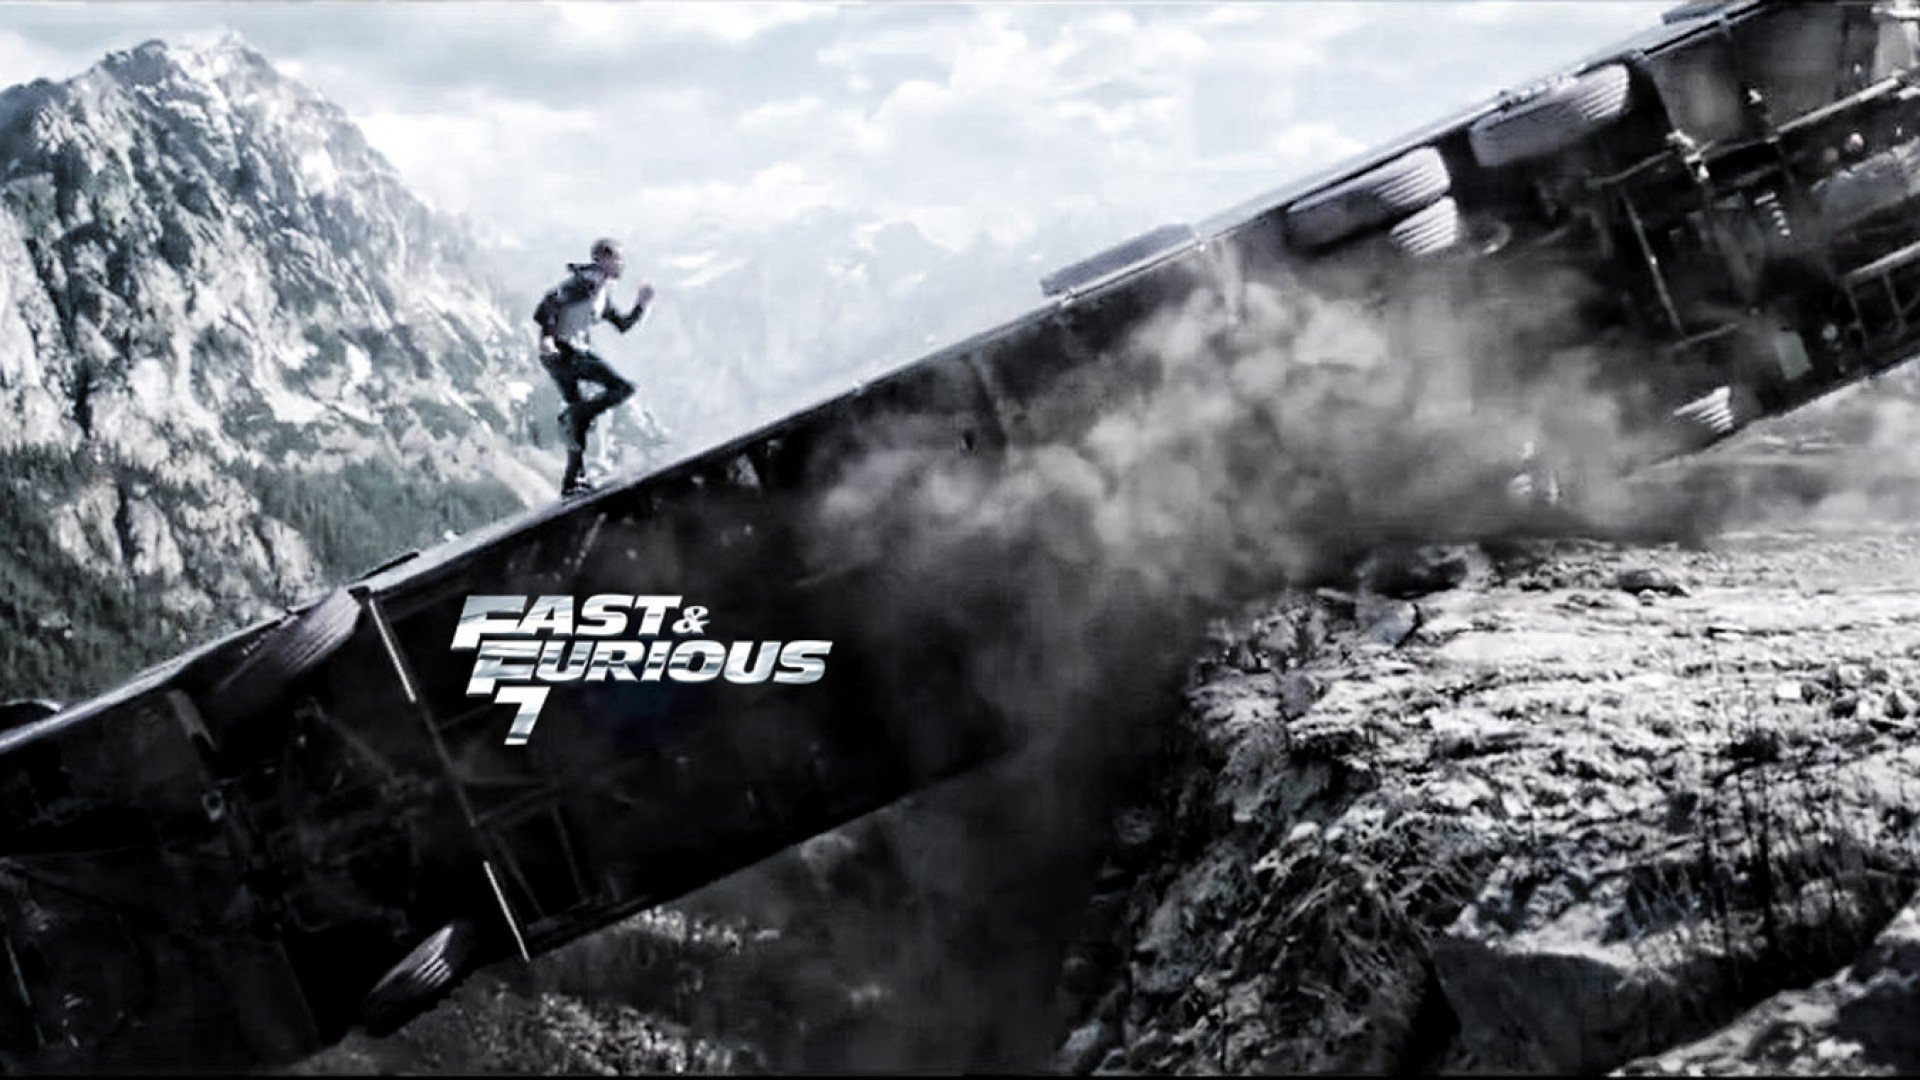 Fast And Furious 7 Wallpaper: FURIOUS-7 Action Race Racing Crime Thriller Fast Furious